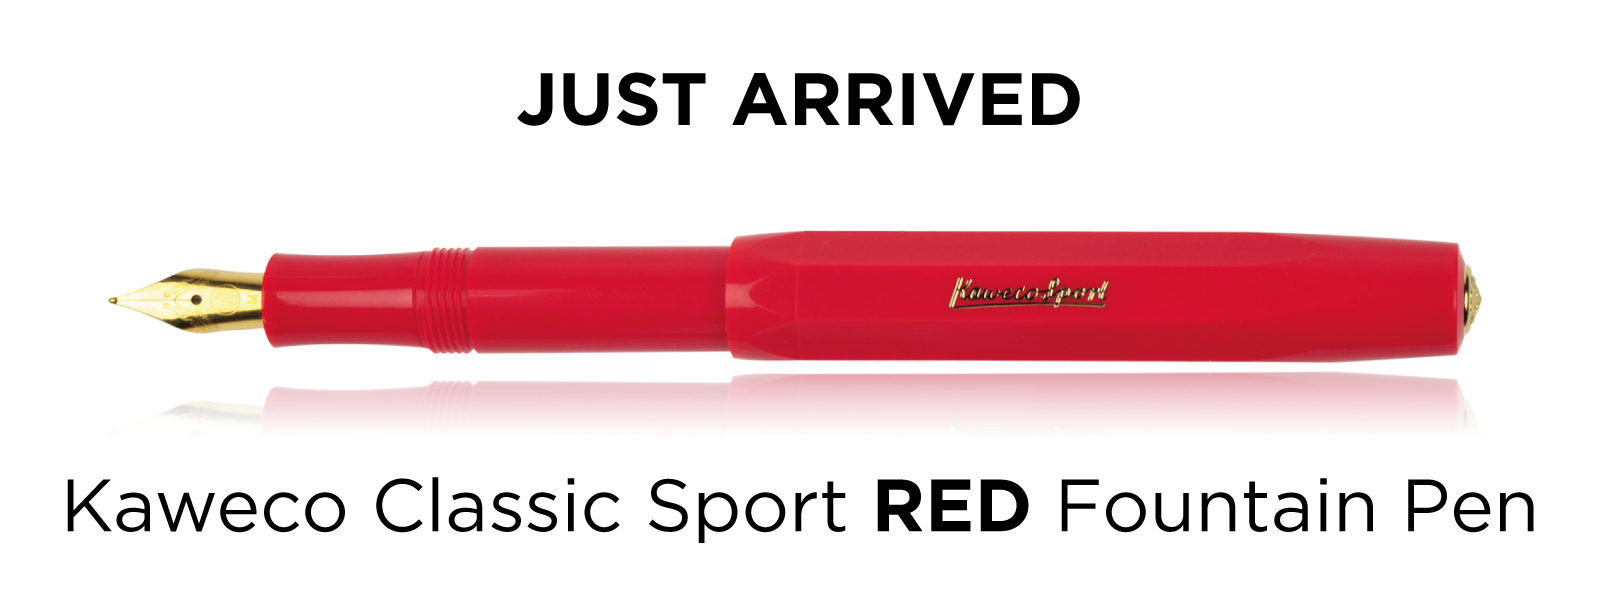 Kaweco Classic Sport Fountain Pen in Red Colour